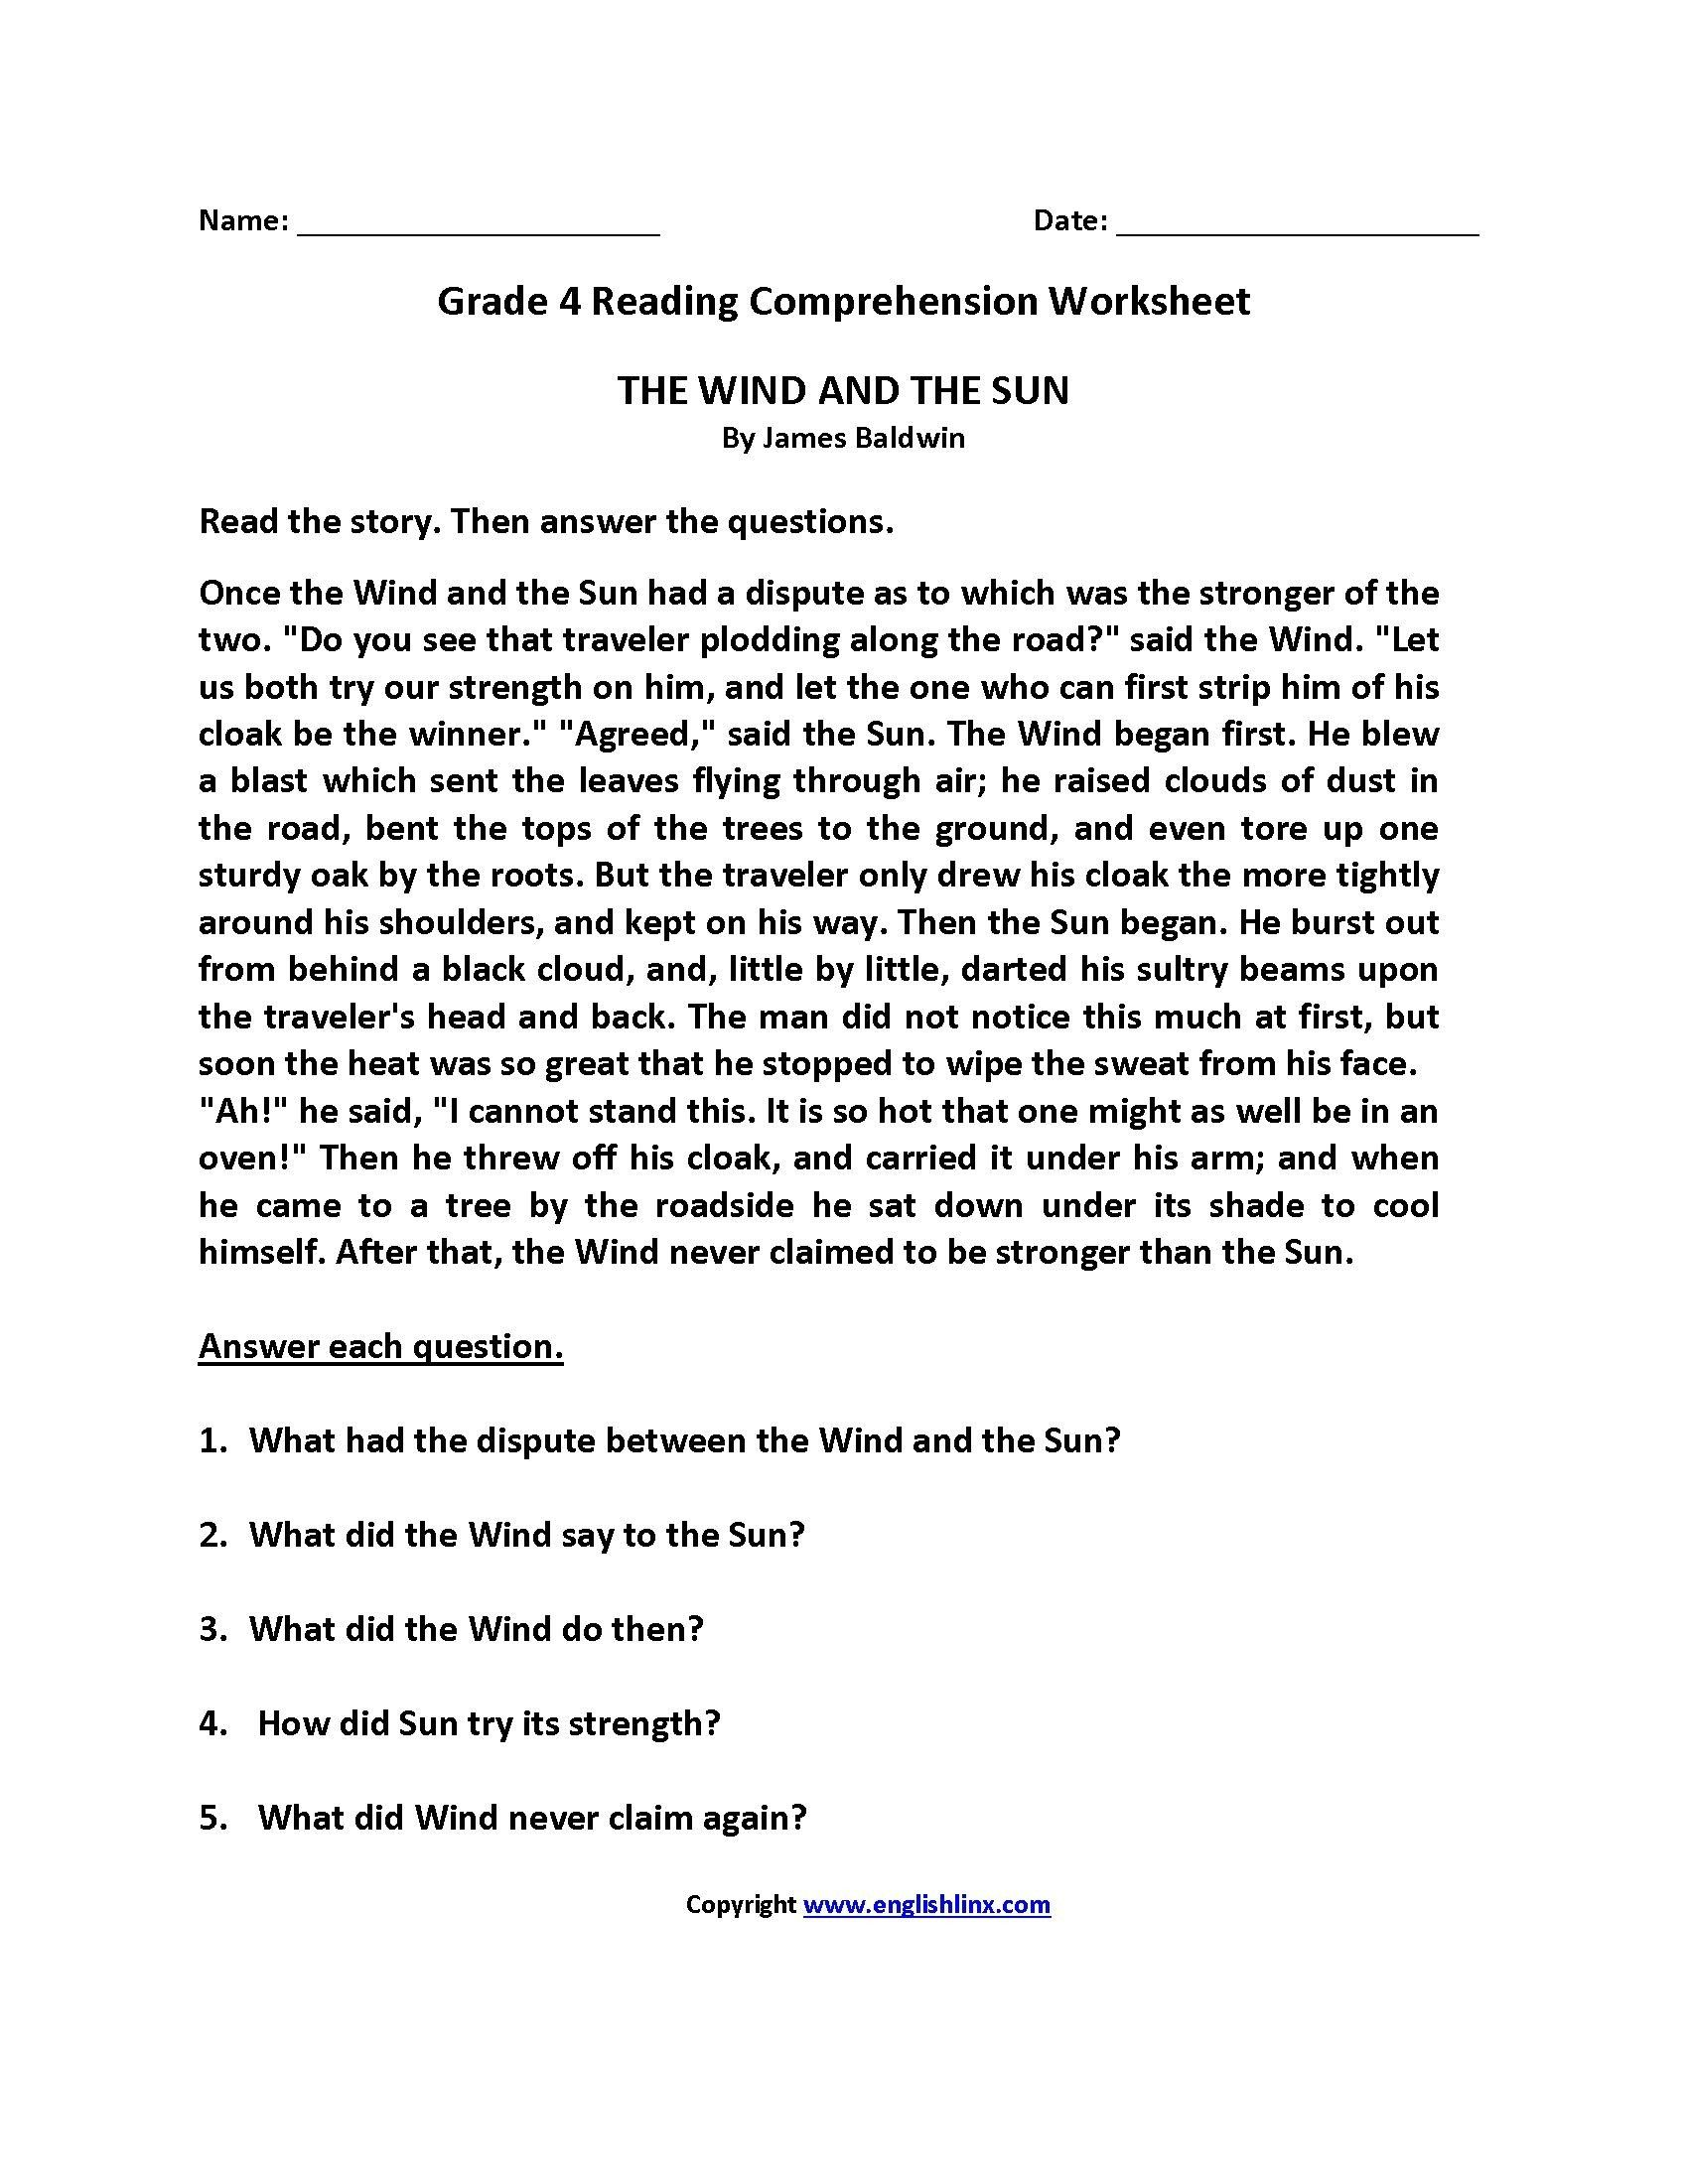 Comprehension Worksheets Grade 4 Lacocinamagicanet In